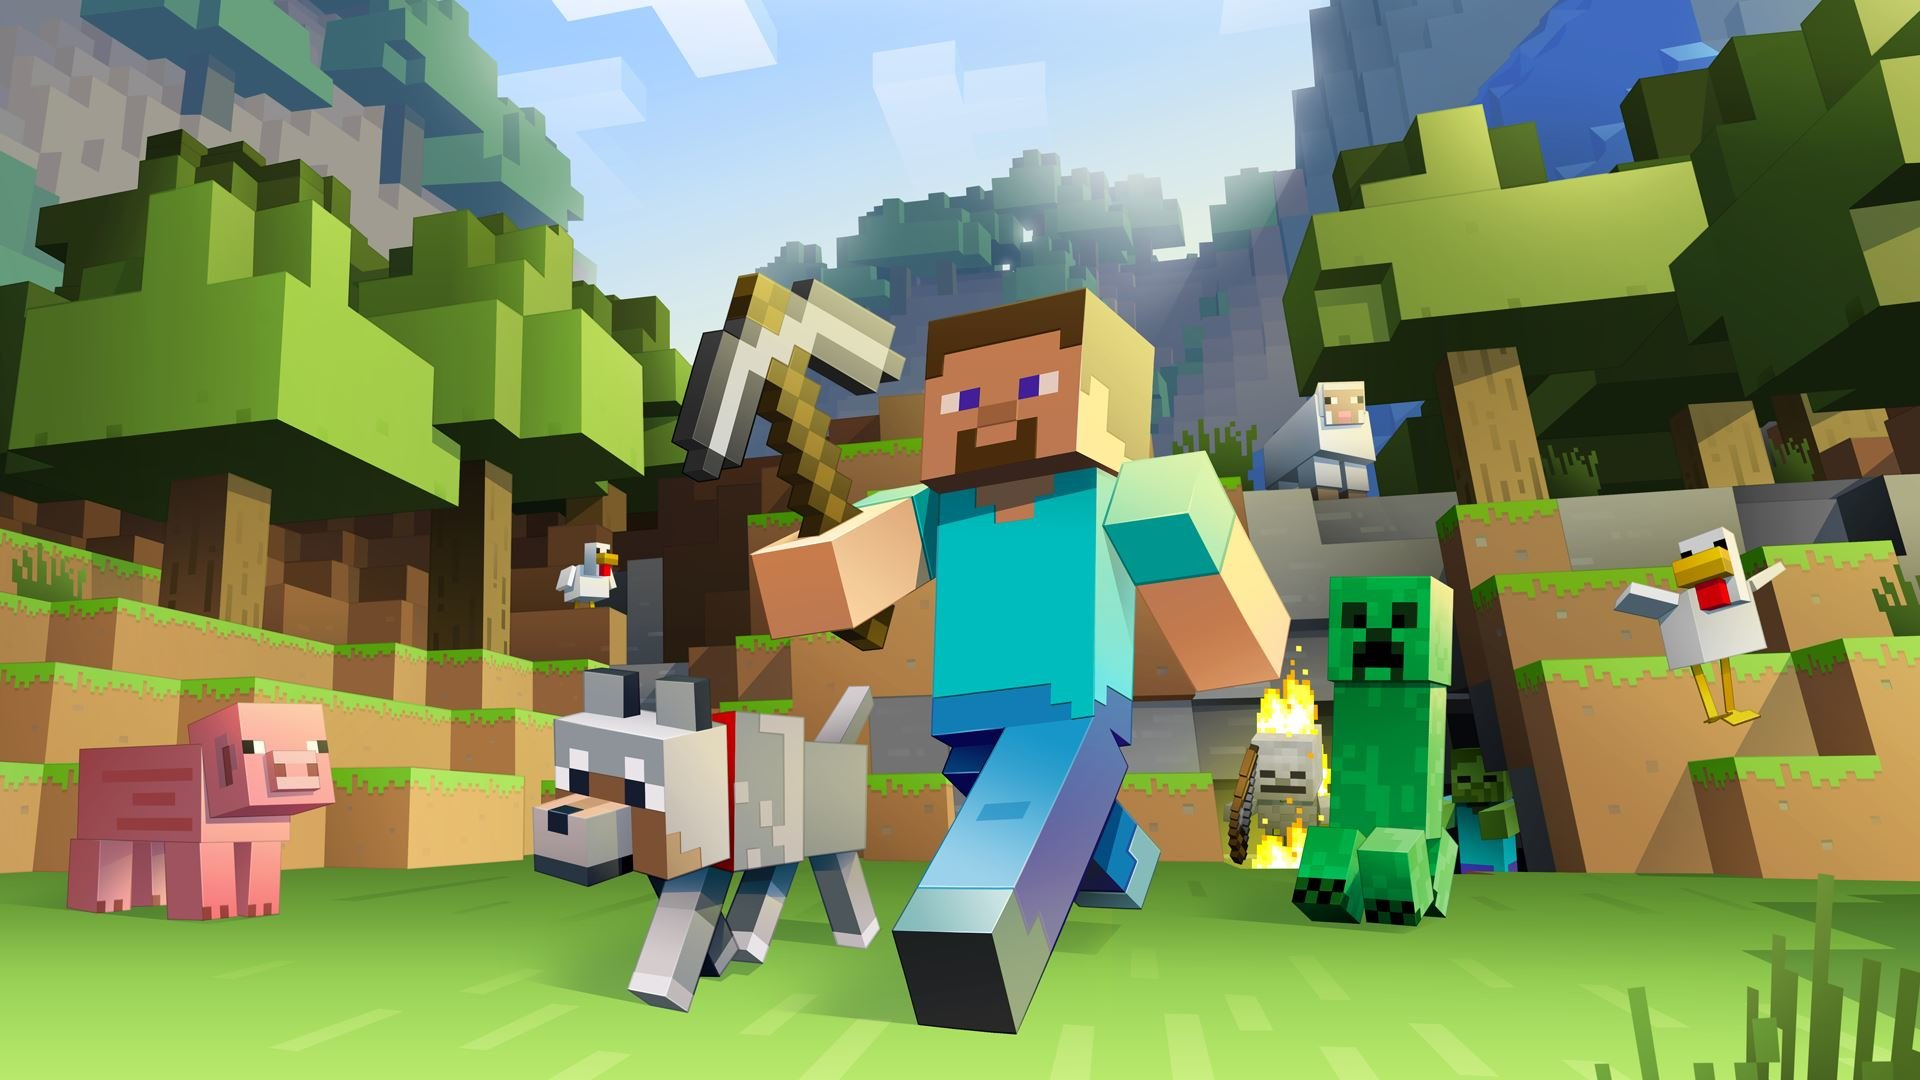 Free Minecraft High Quality Background Id385548 For Full Hd 1080p Pc